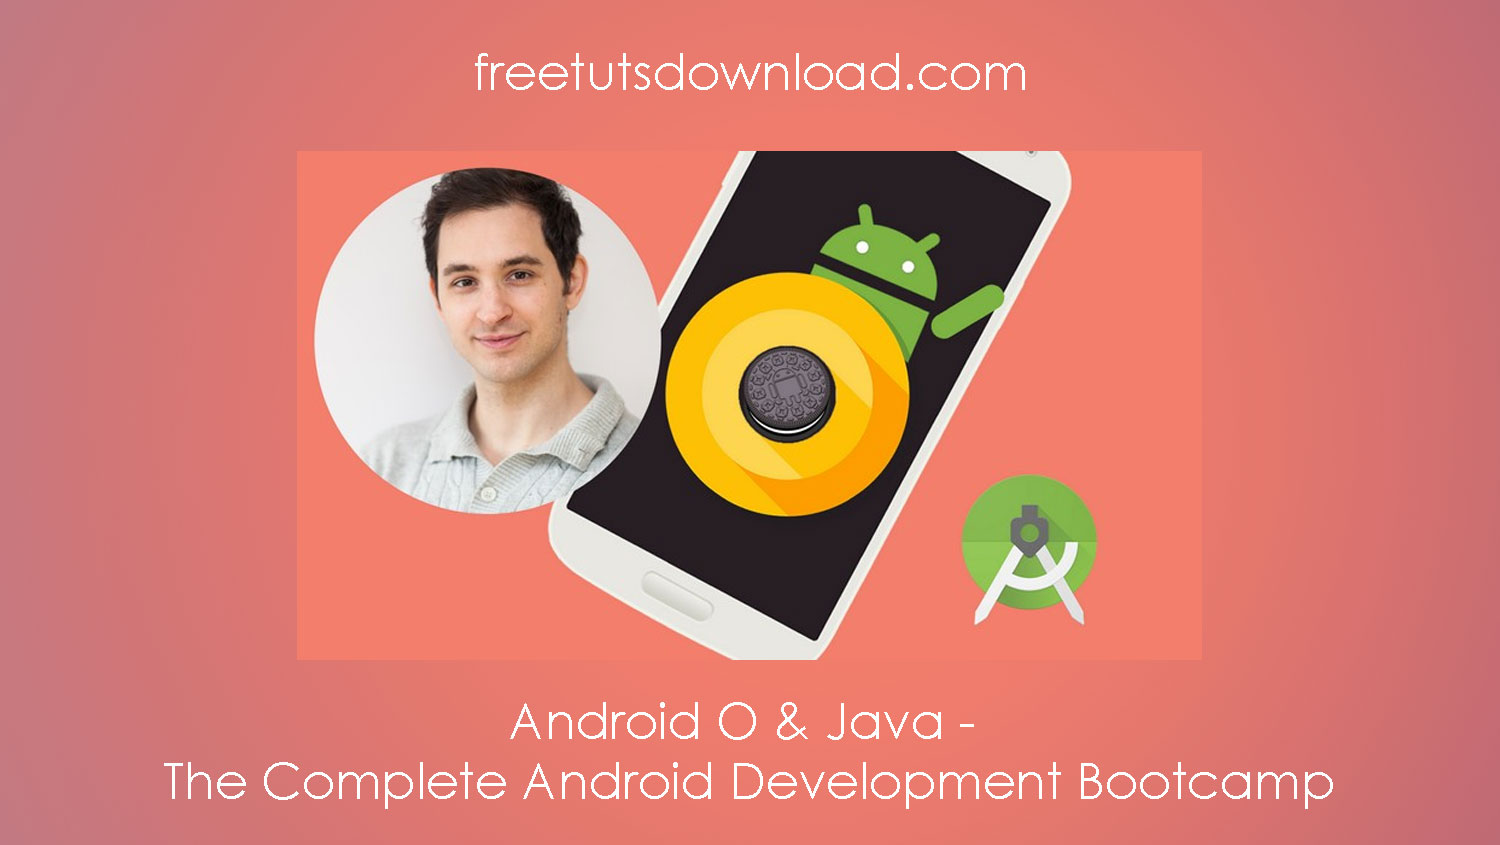 Android O & Java - The Complete Android Development Bootcamp